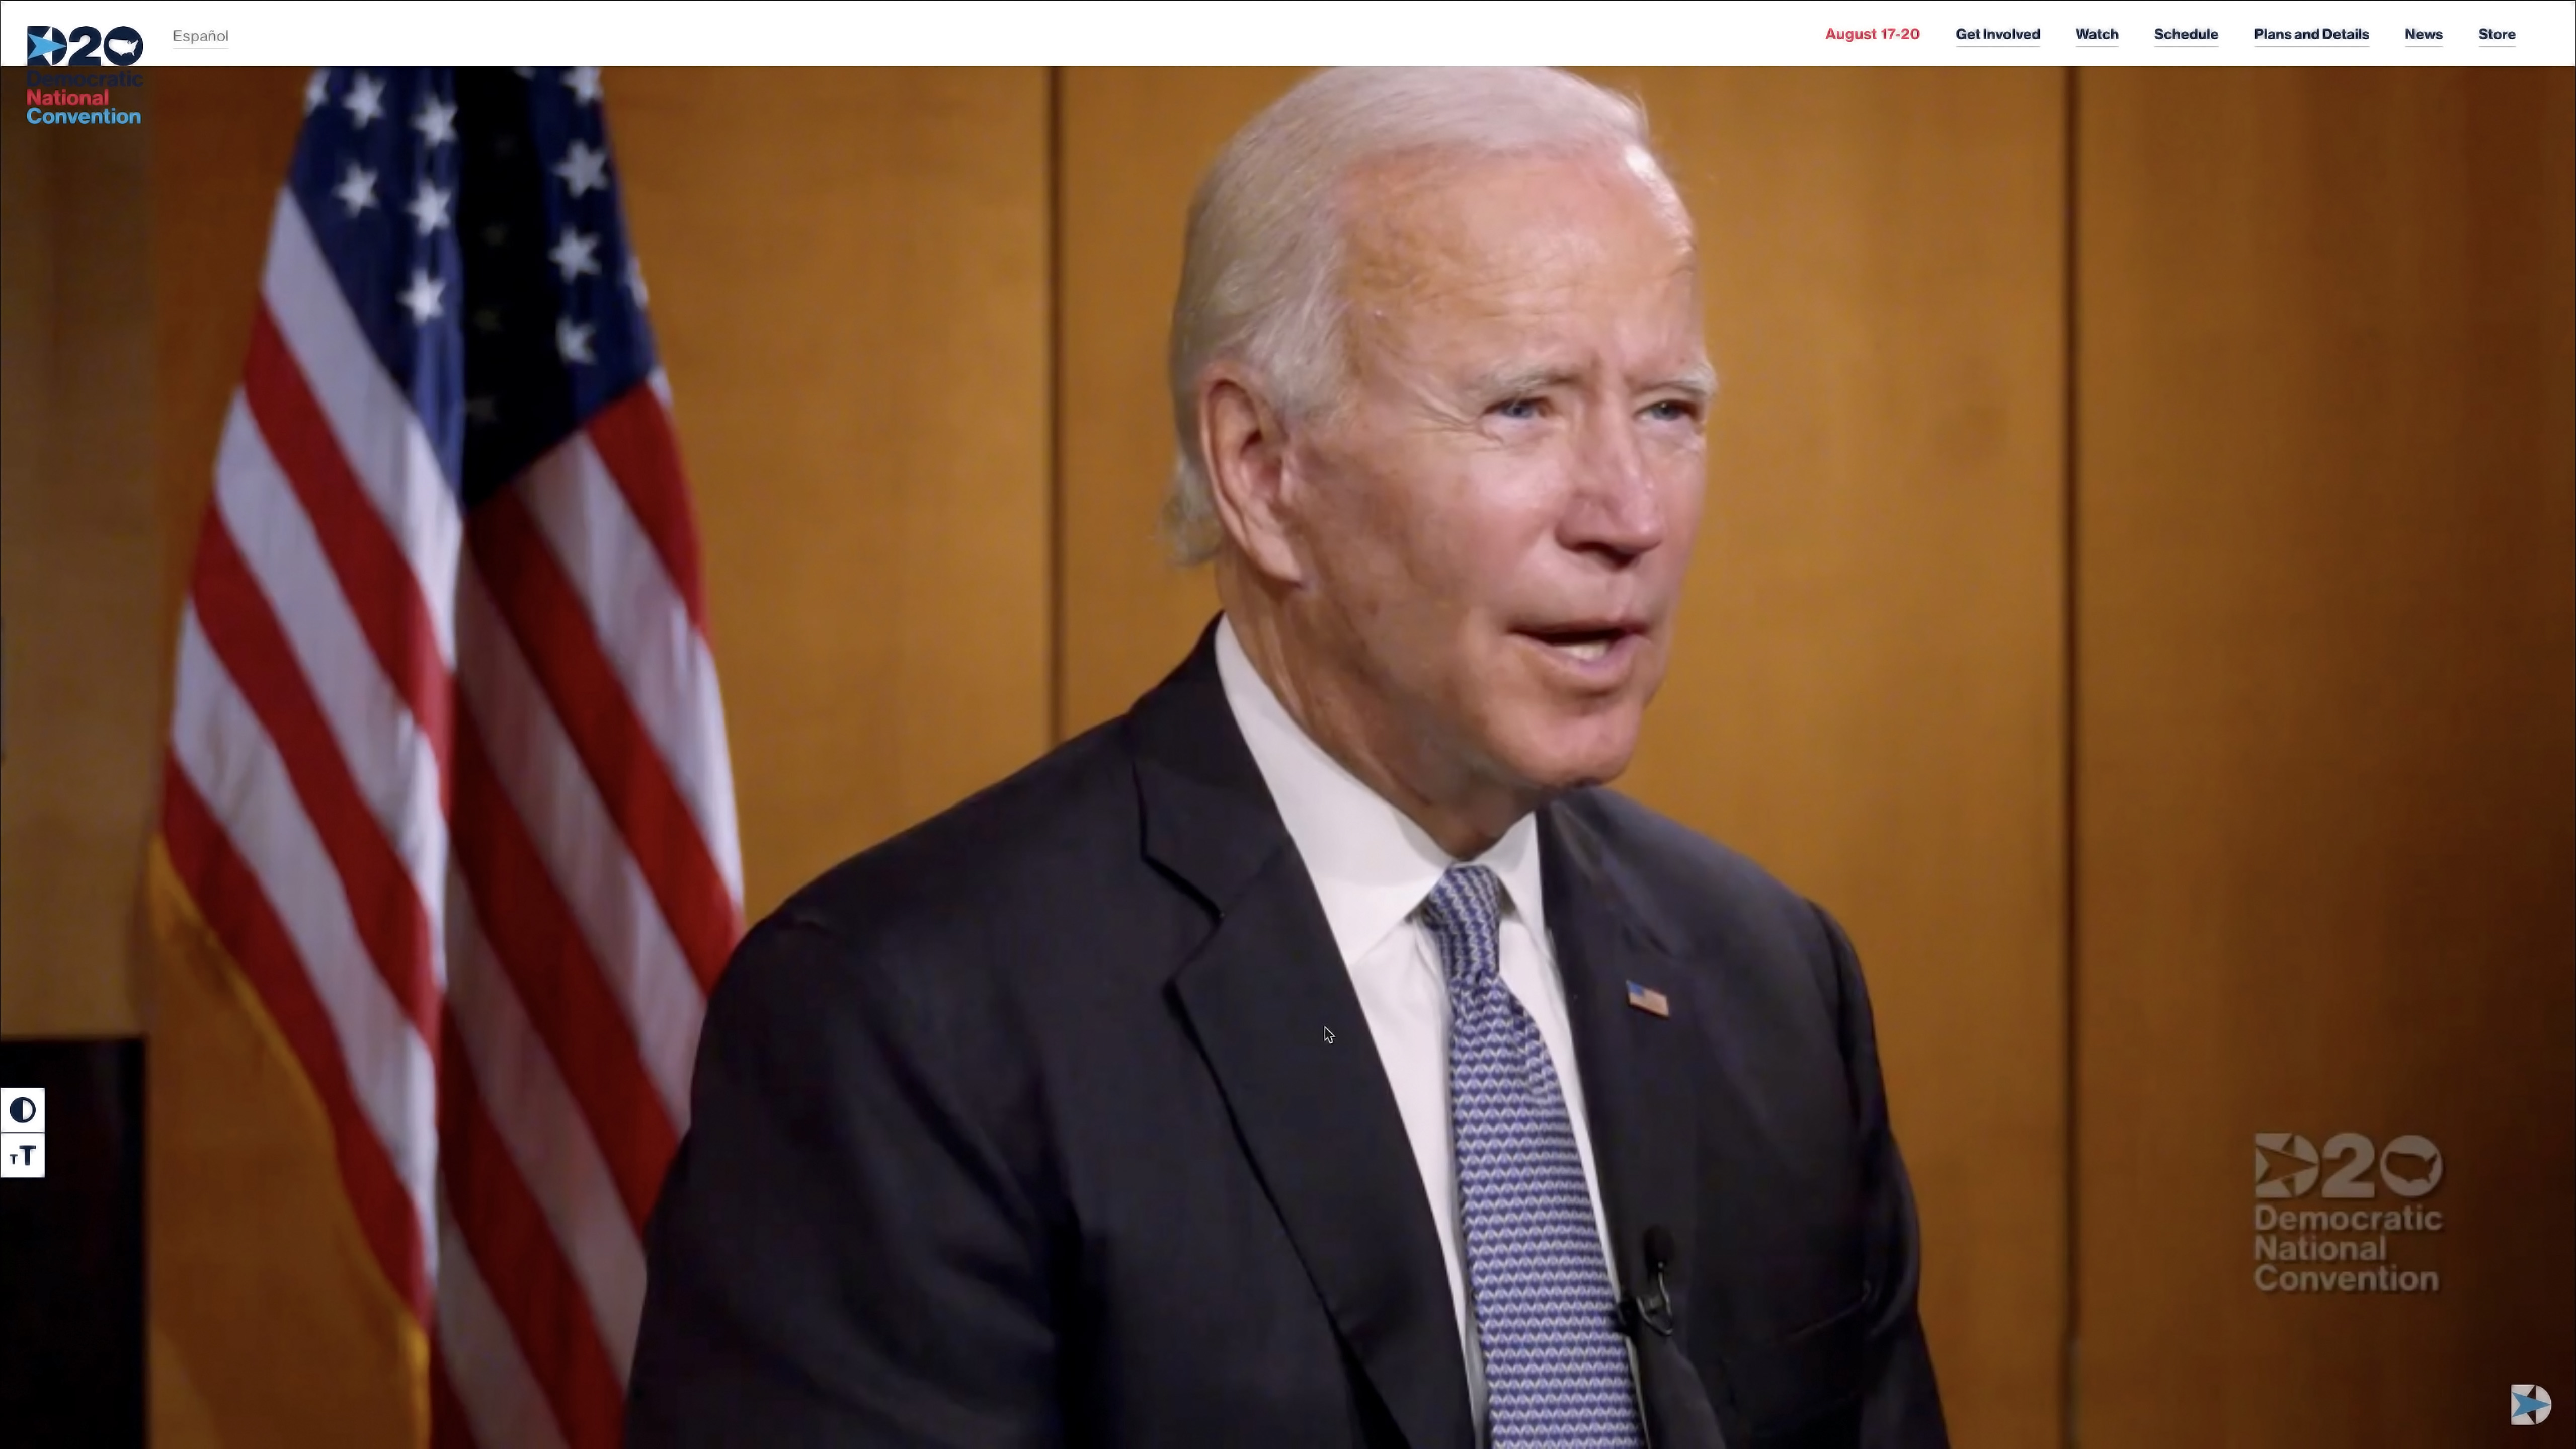 Presumptive Democratic presidential nominee former Vice President Joe Biden wears a suit and tie sitting in front of an American flag on a conference call during the virtual convention on August 17, 2020.